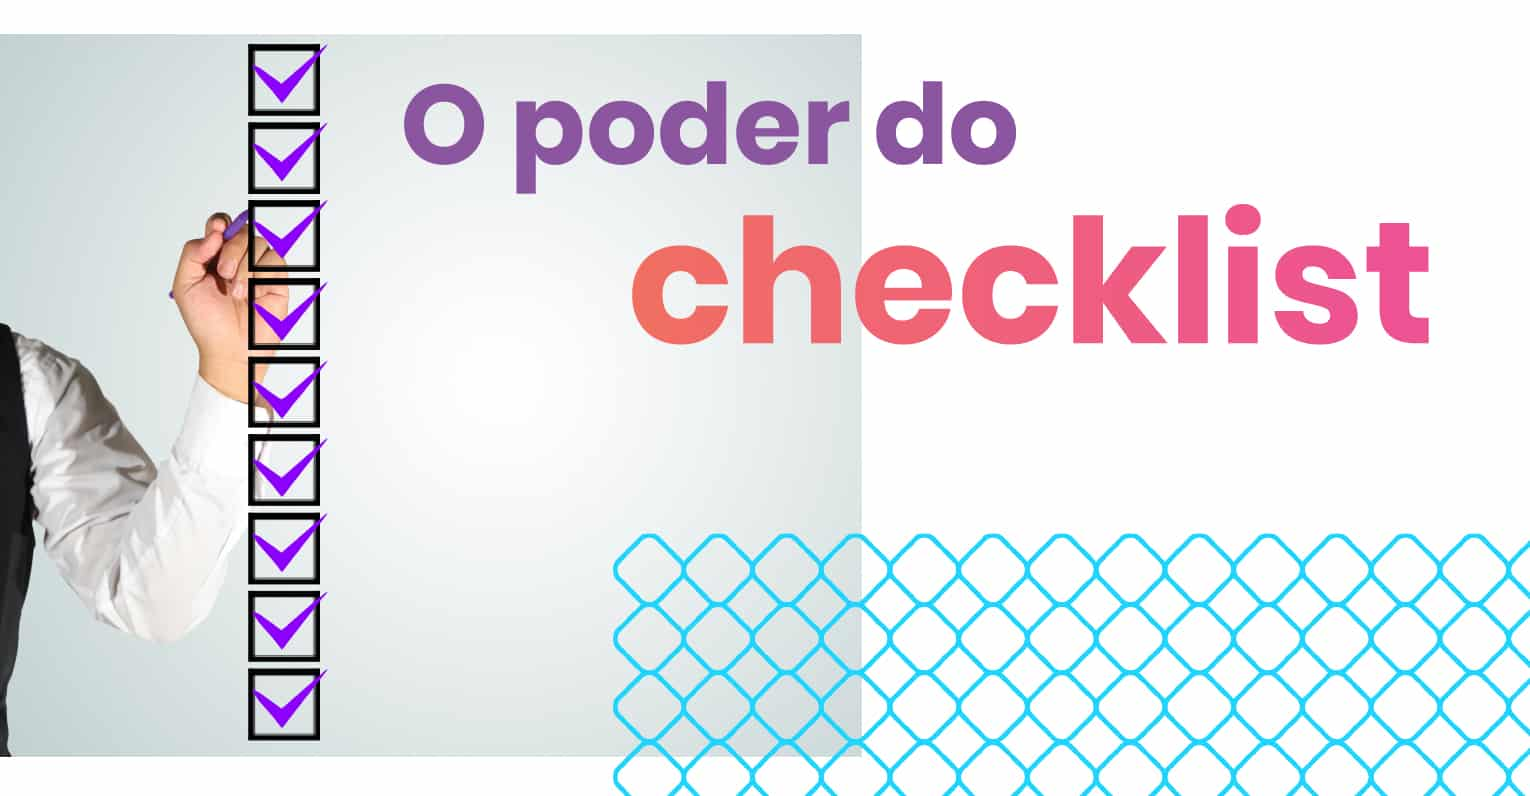 O poder do checklist